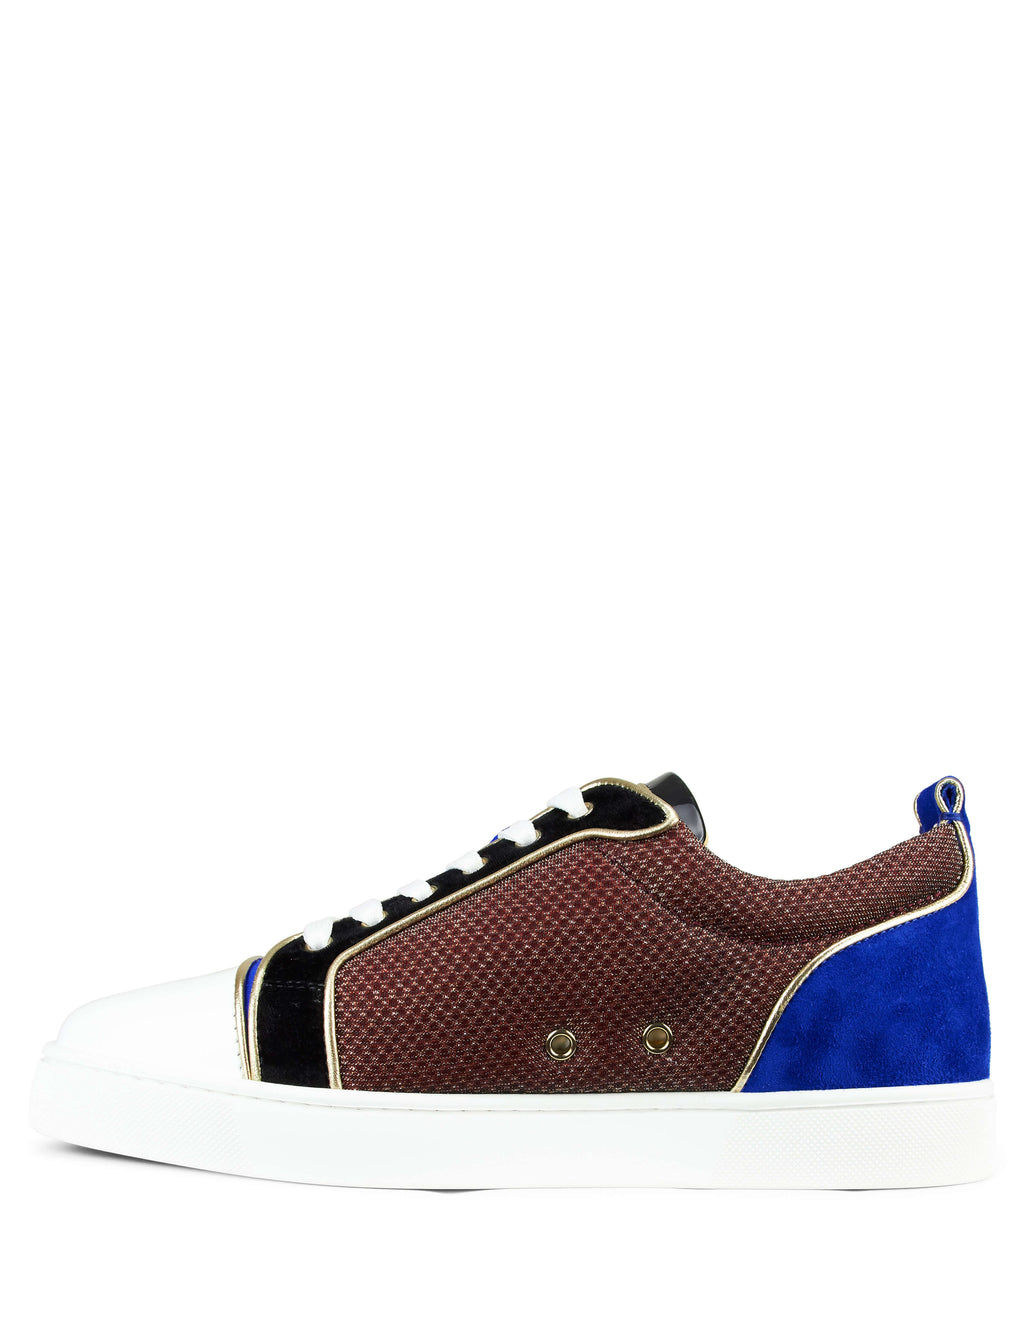 Christian Louboutin Louis Junior Orlato Sneaker Blue 3180957cma3 Men's Giulio Fashion